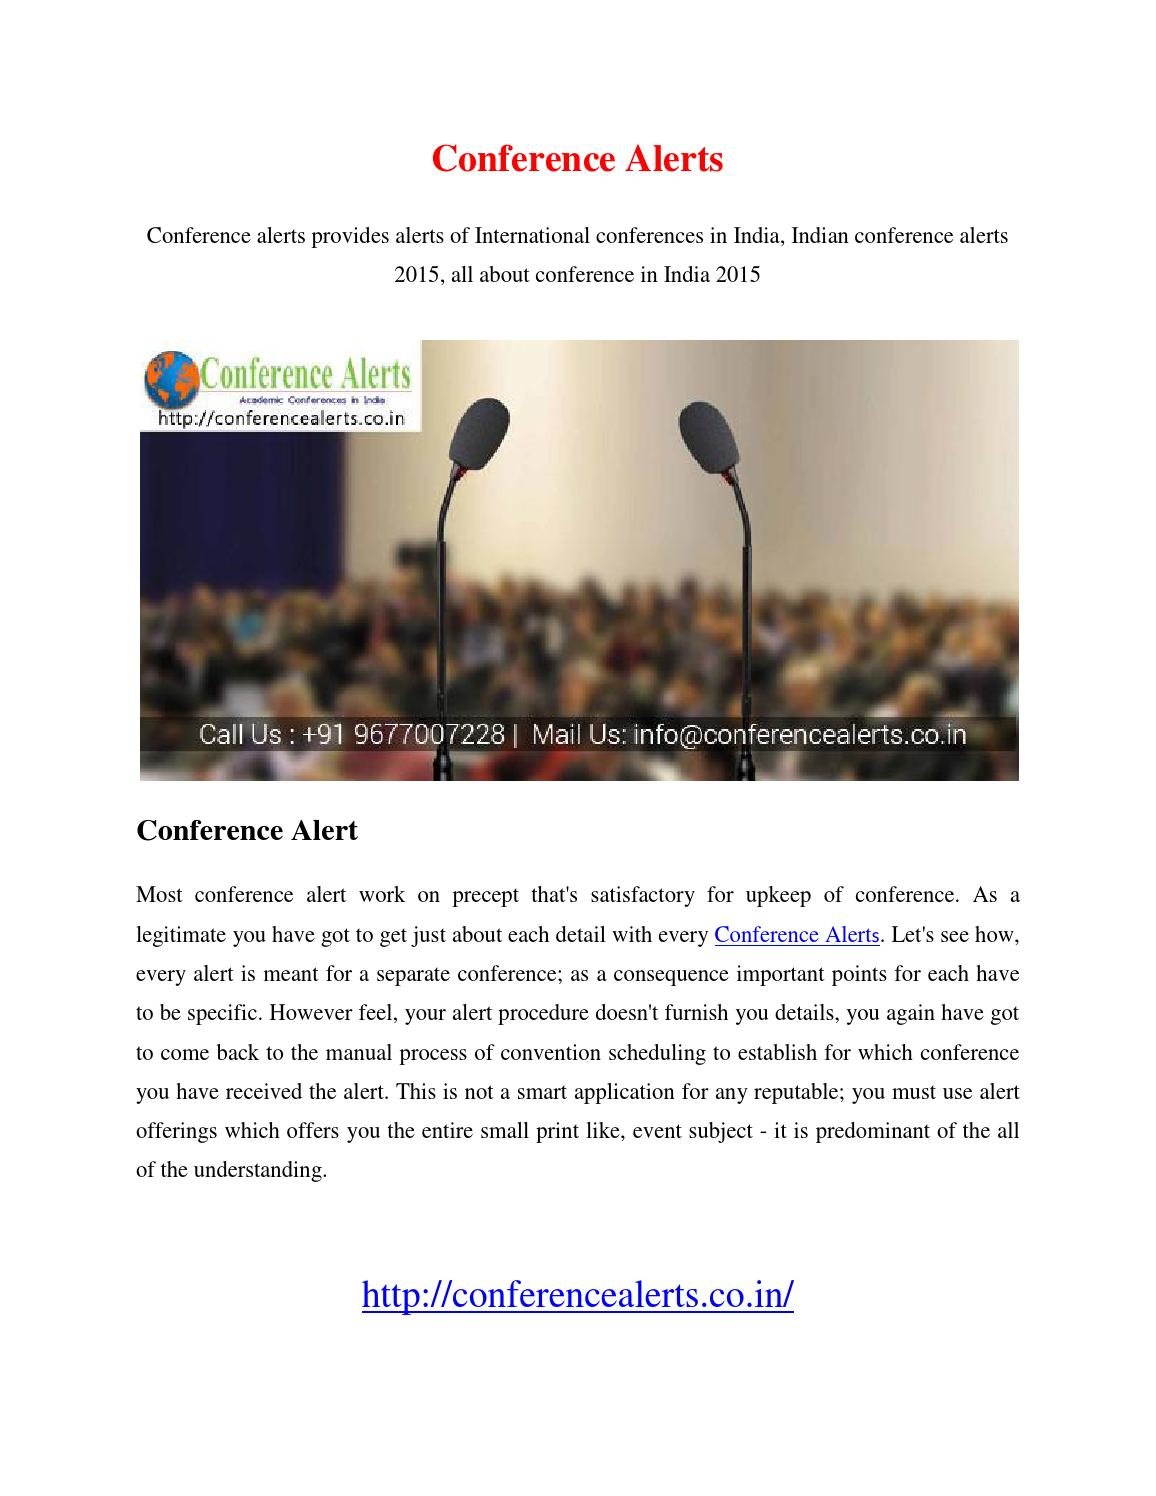 Conference Alerts by subhasri01 - issuu